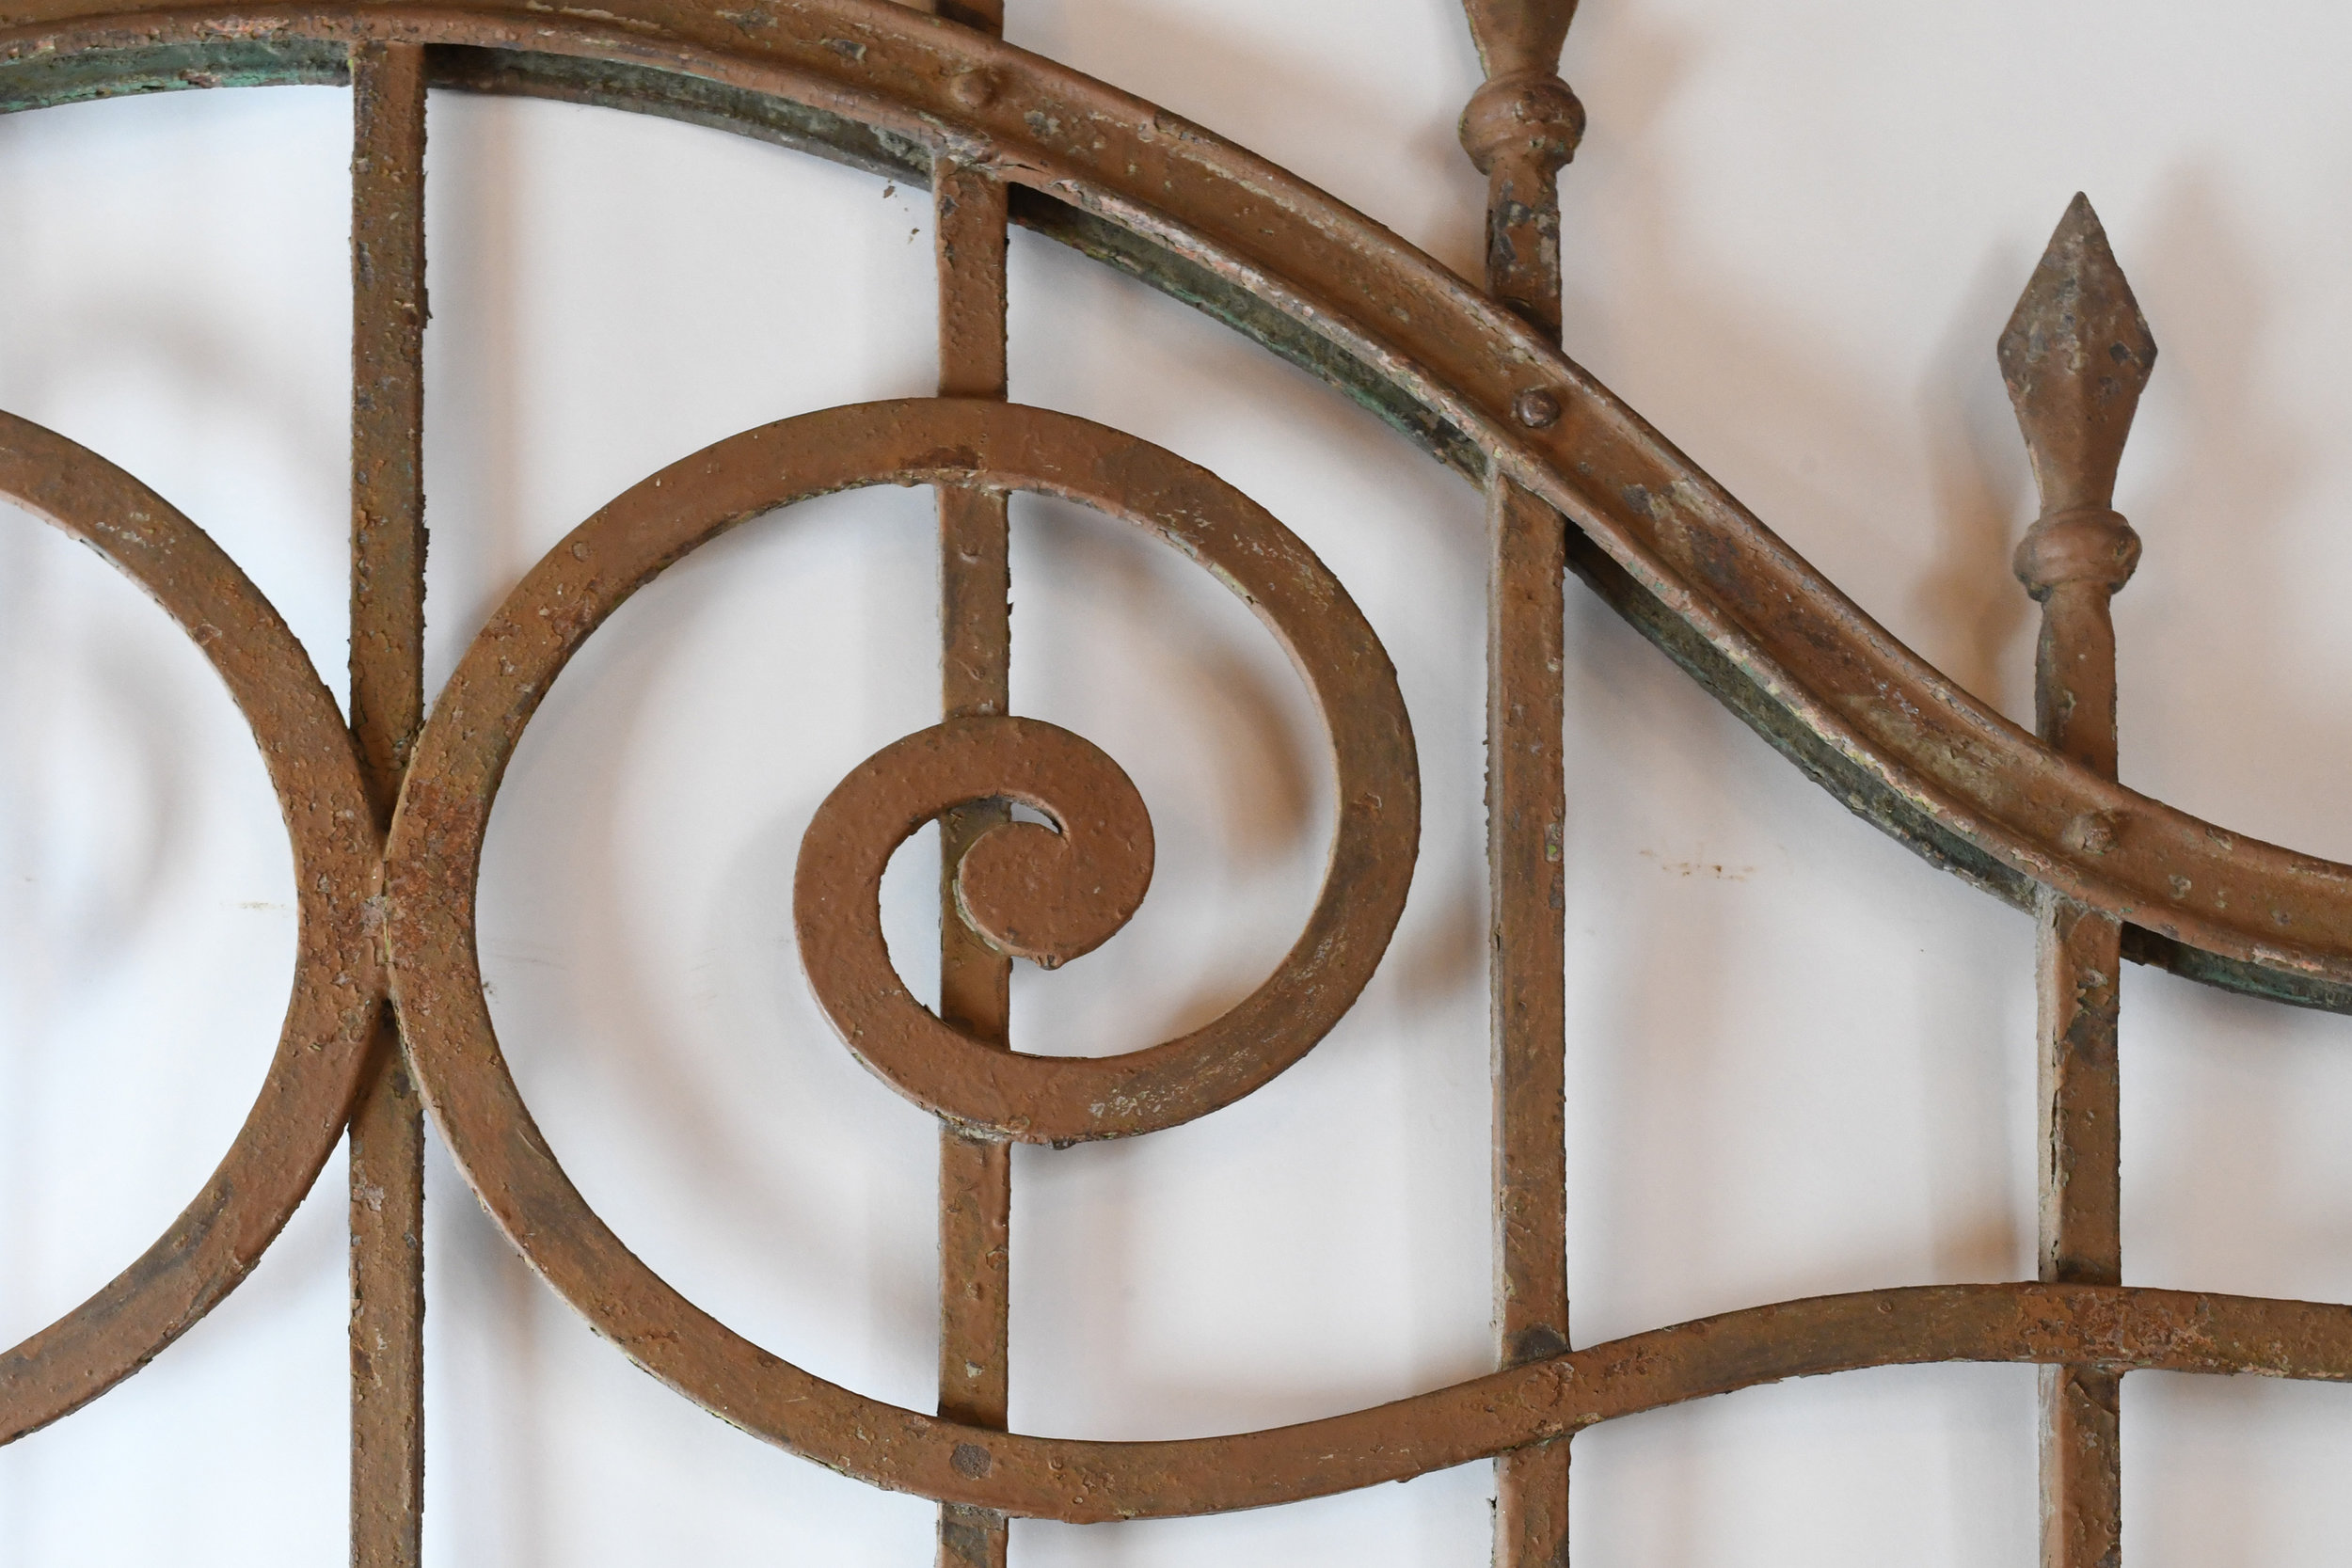 47498-Arched-iron-gate-detail-23.jpg